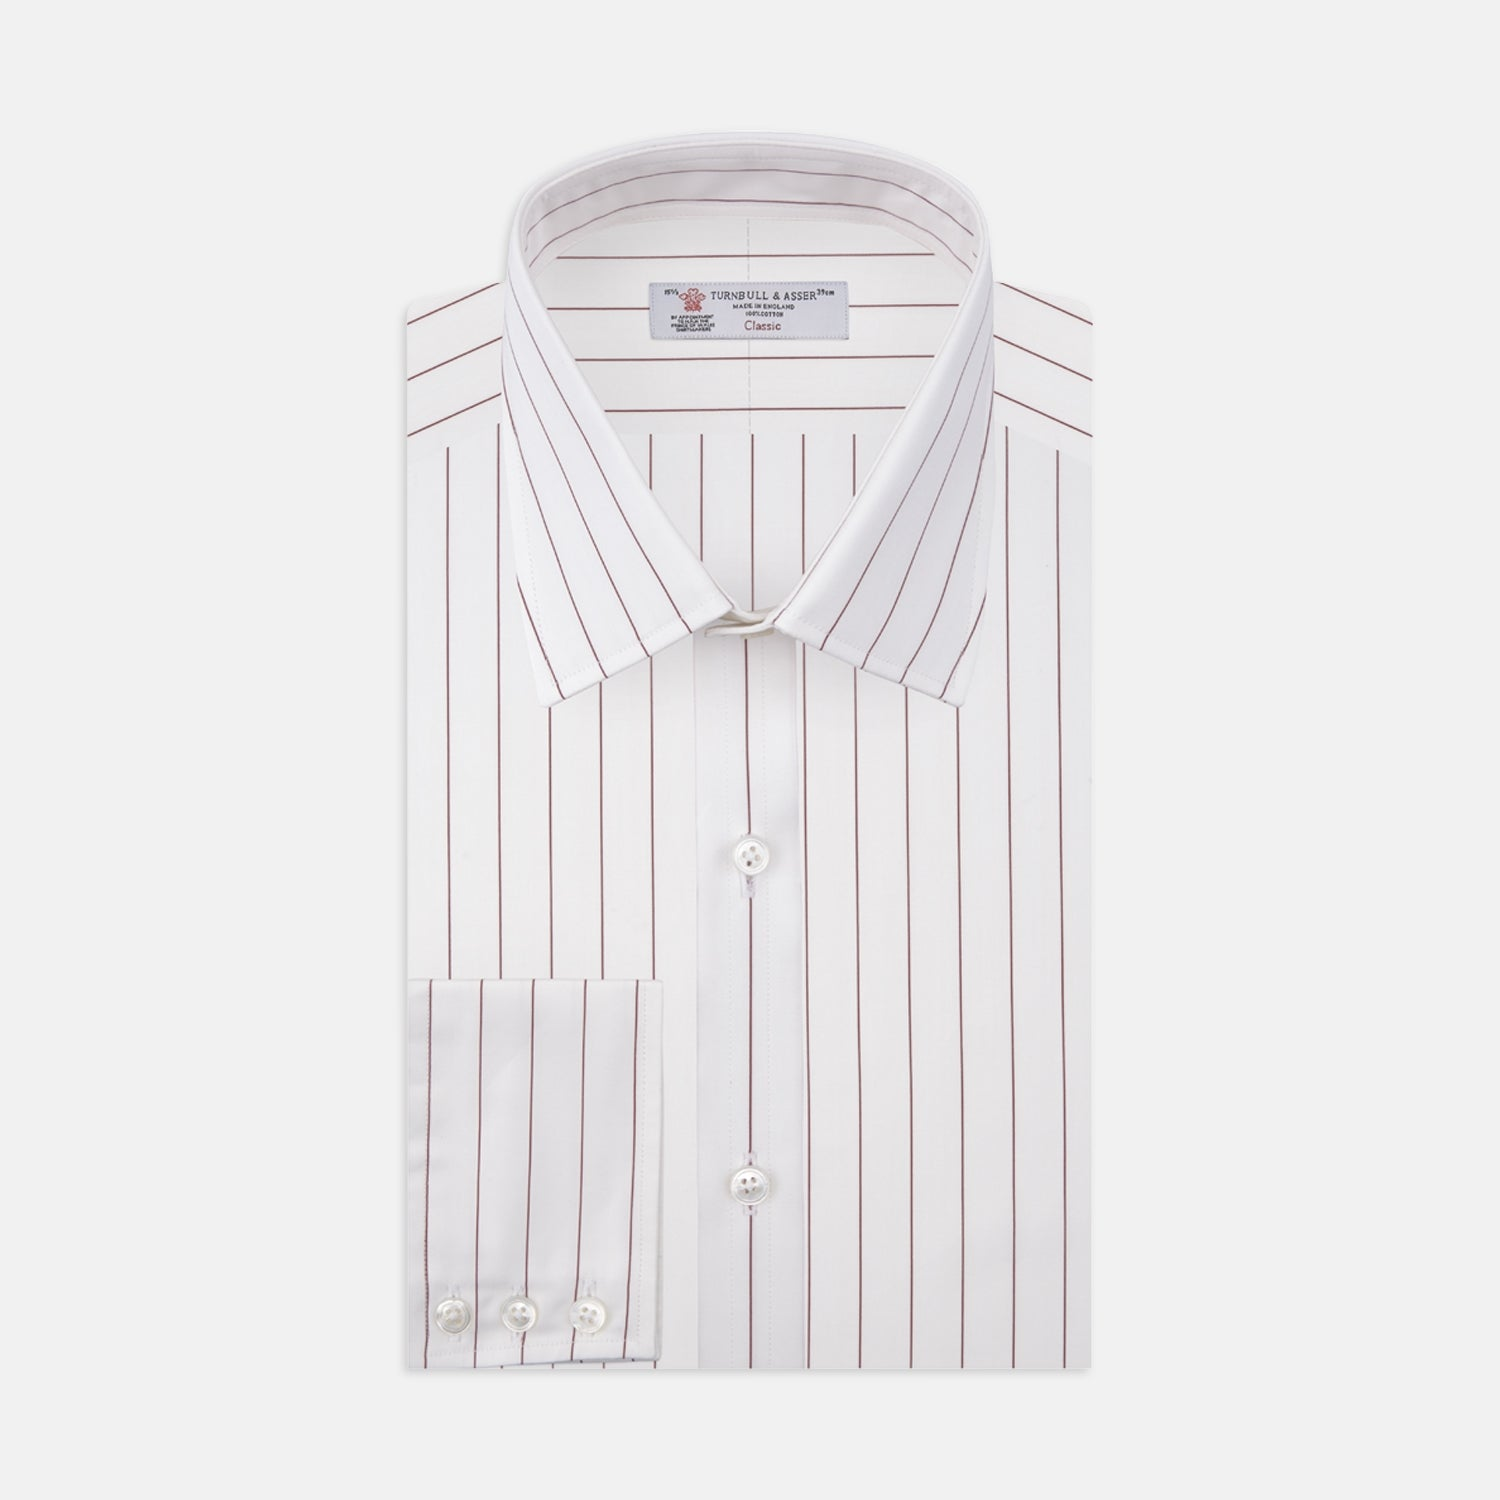 White and Burgundy Fine Stripe Cotton Shirt with T&A Collar and 3-Button Cuffs